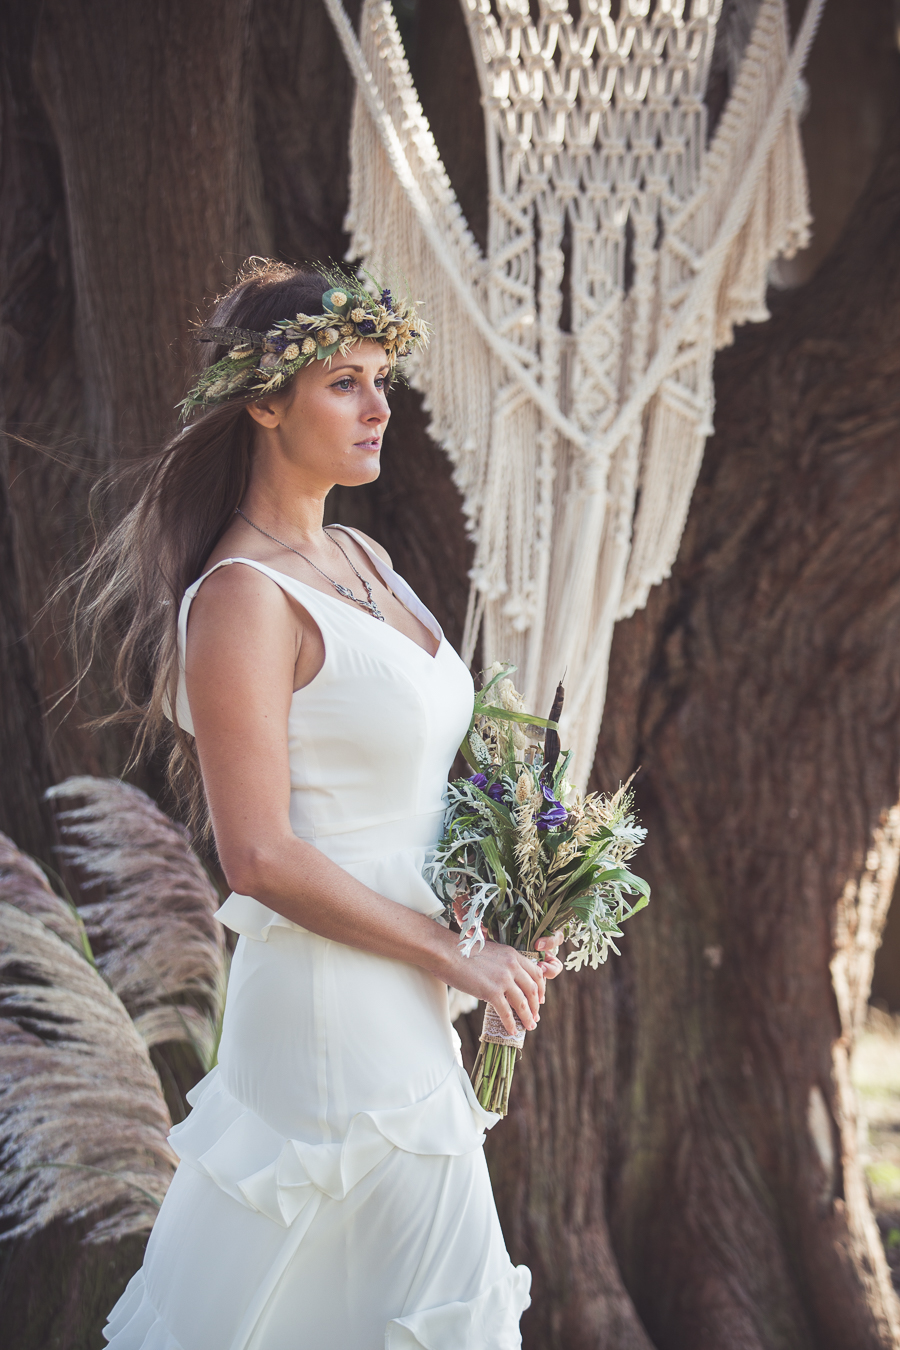 Beach boho wedding styling ideas from the UK, image credit Katie Mortimore (14)